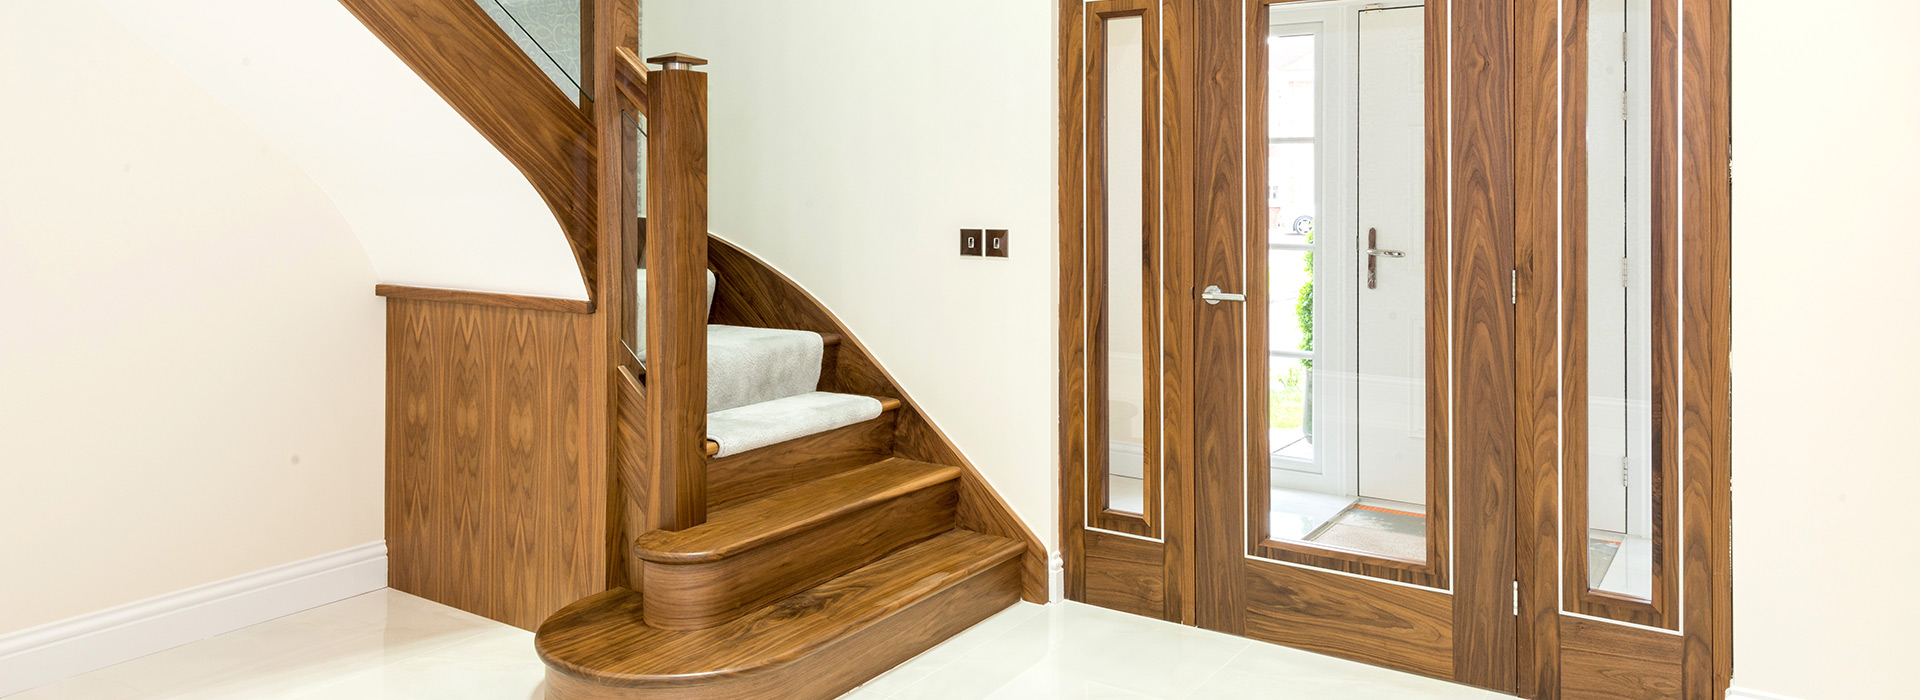 Matching Walnut stairs and doors